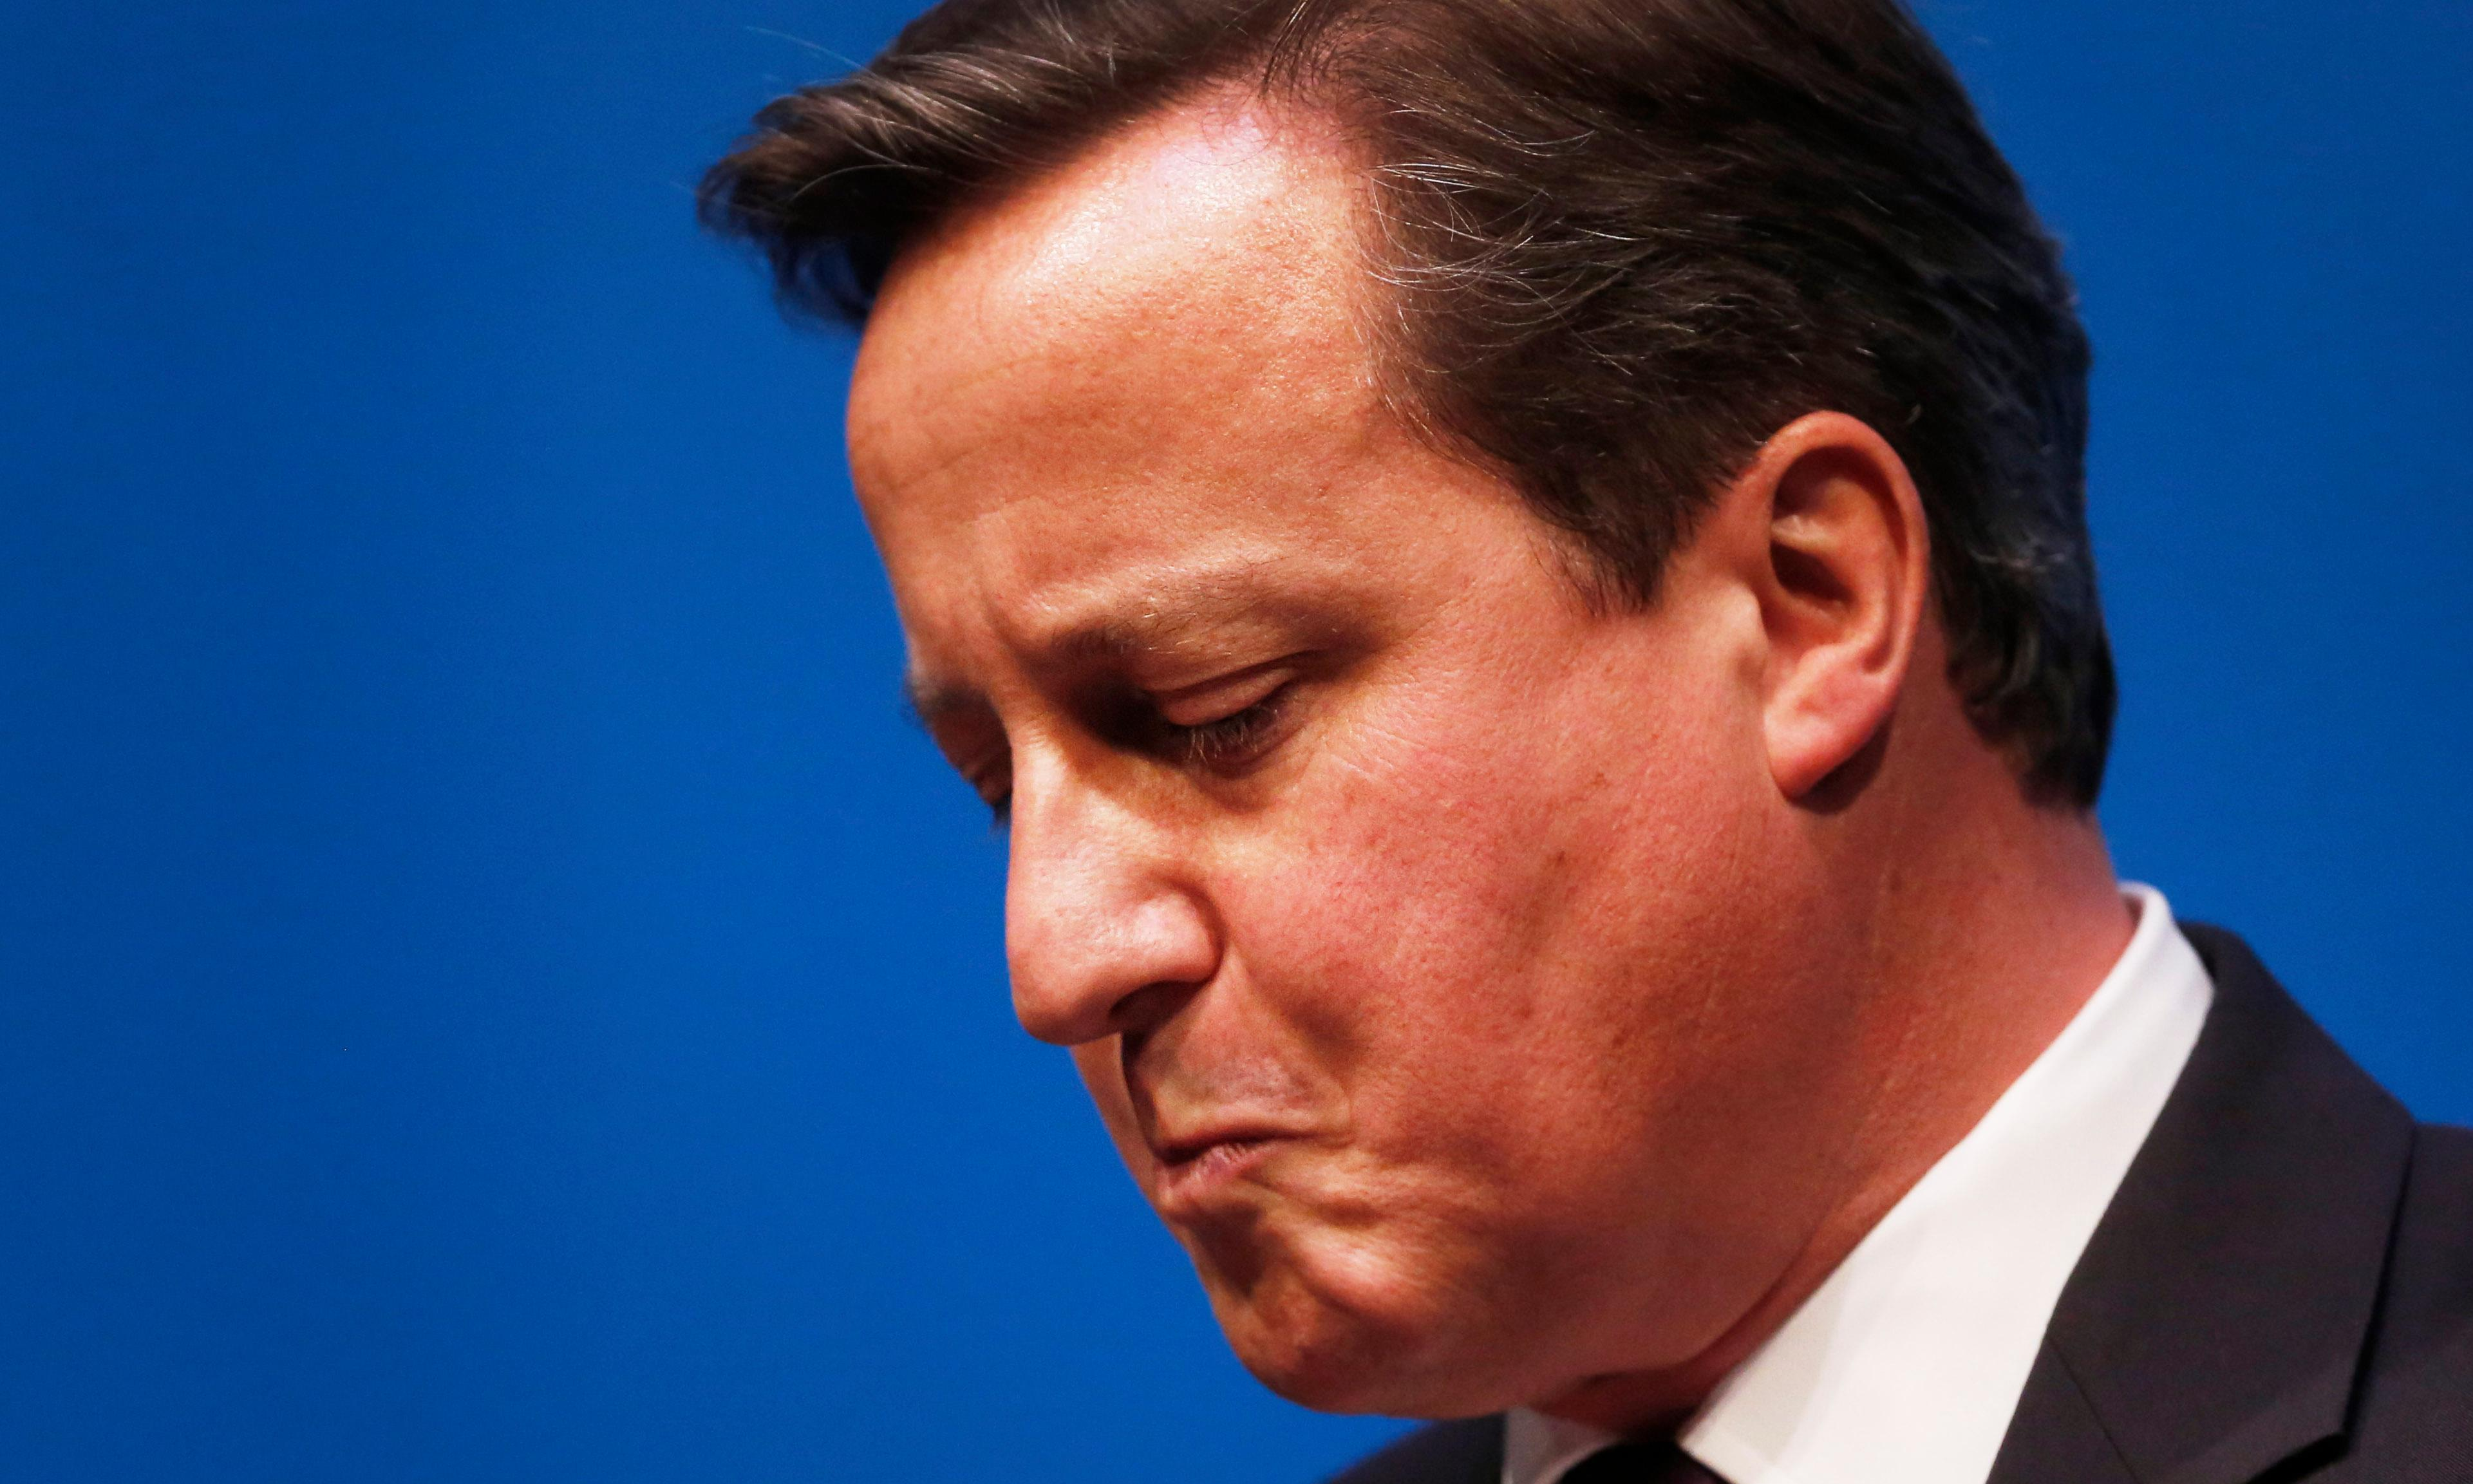 For the Record by David Cameron review – the prime minister who fell short